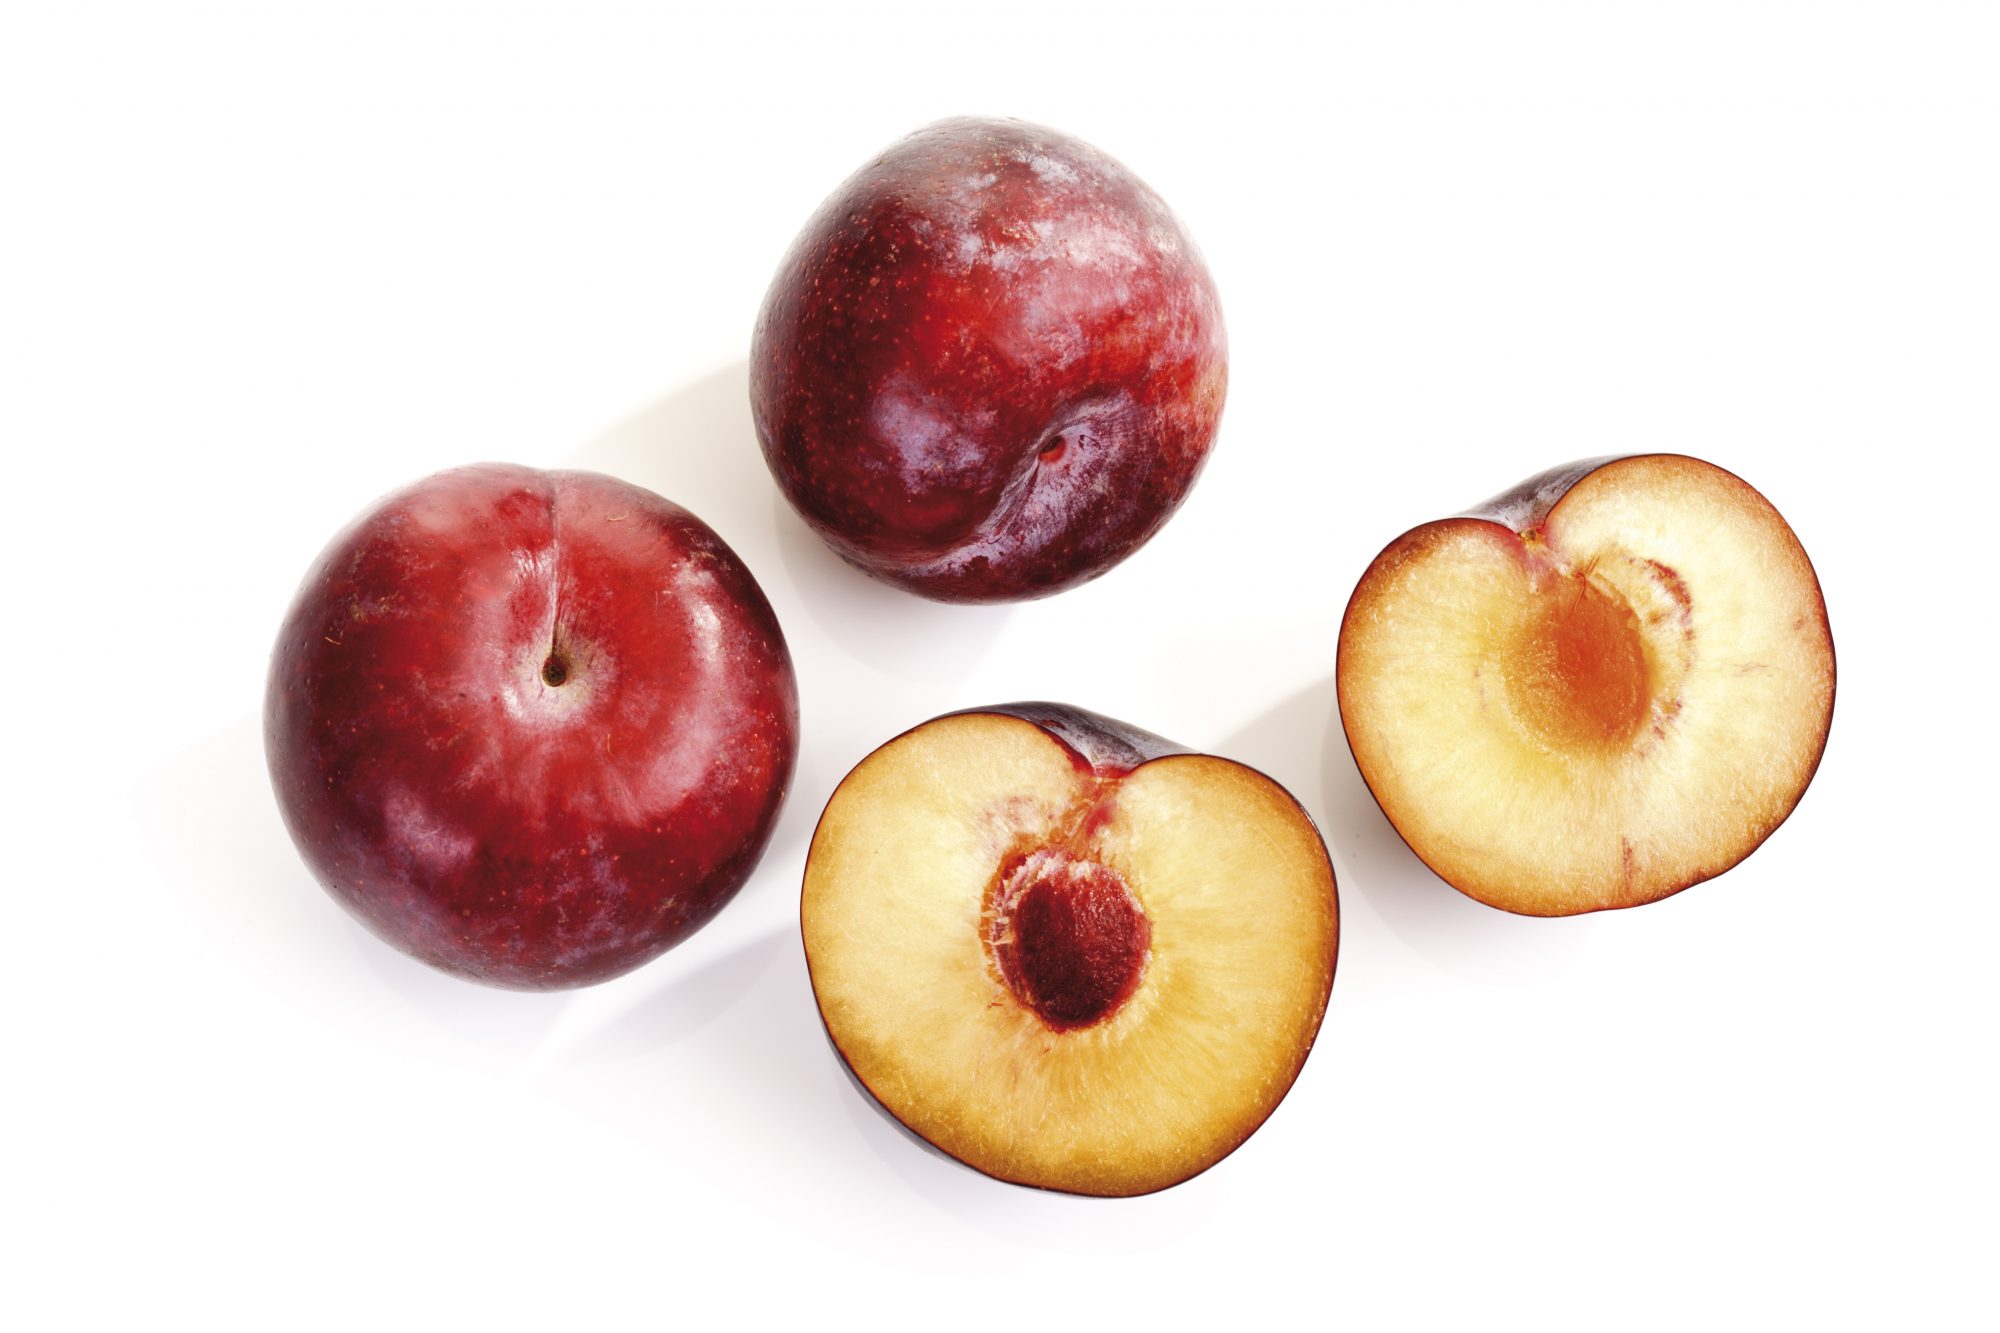 Plums Getty 1/14/20